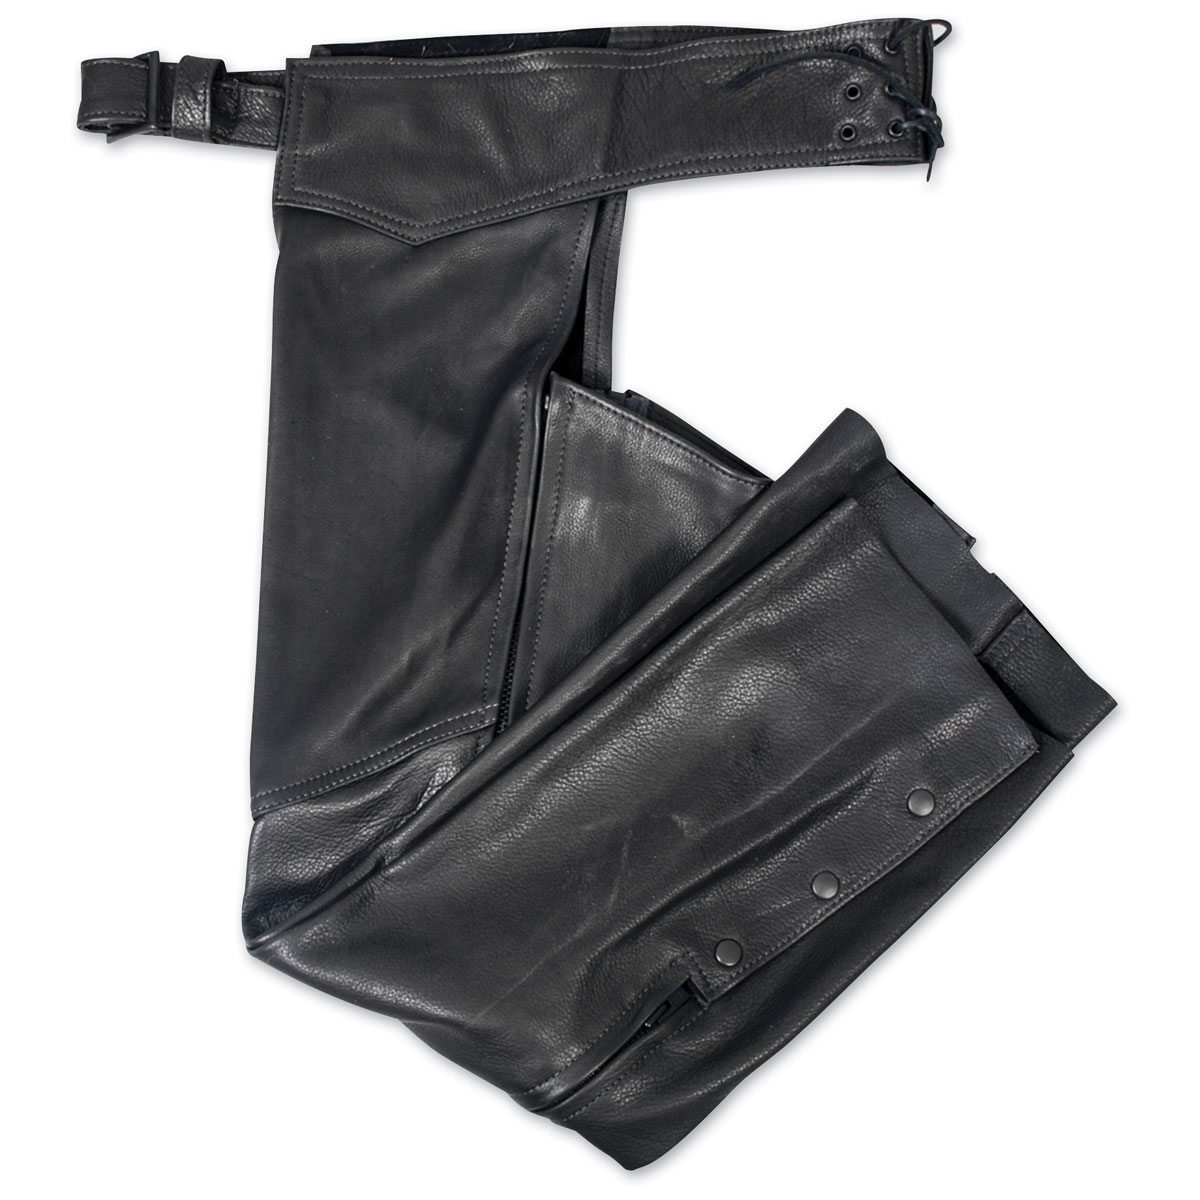 Hot Leathers Women's USA Made Black Leather Chaps